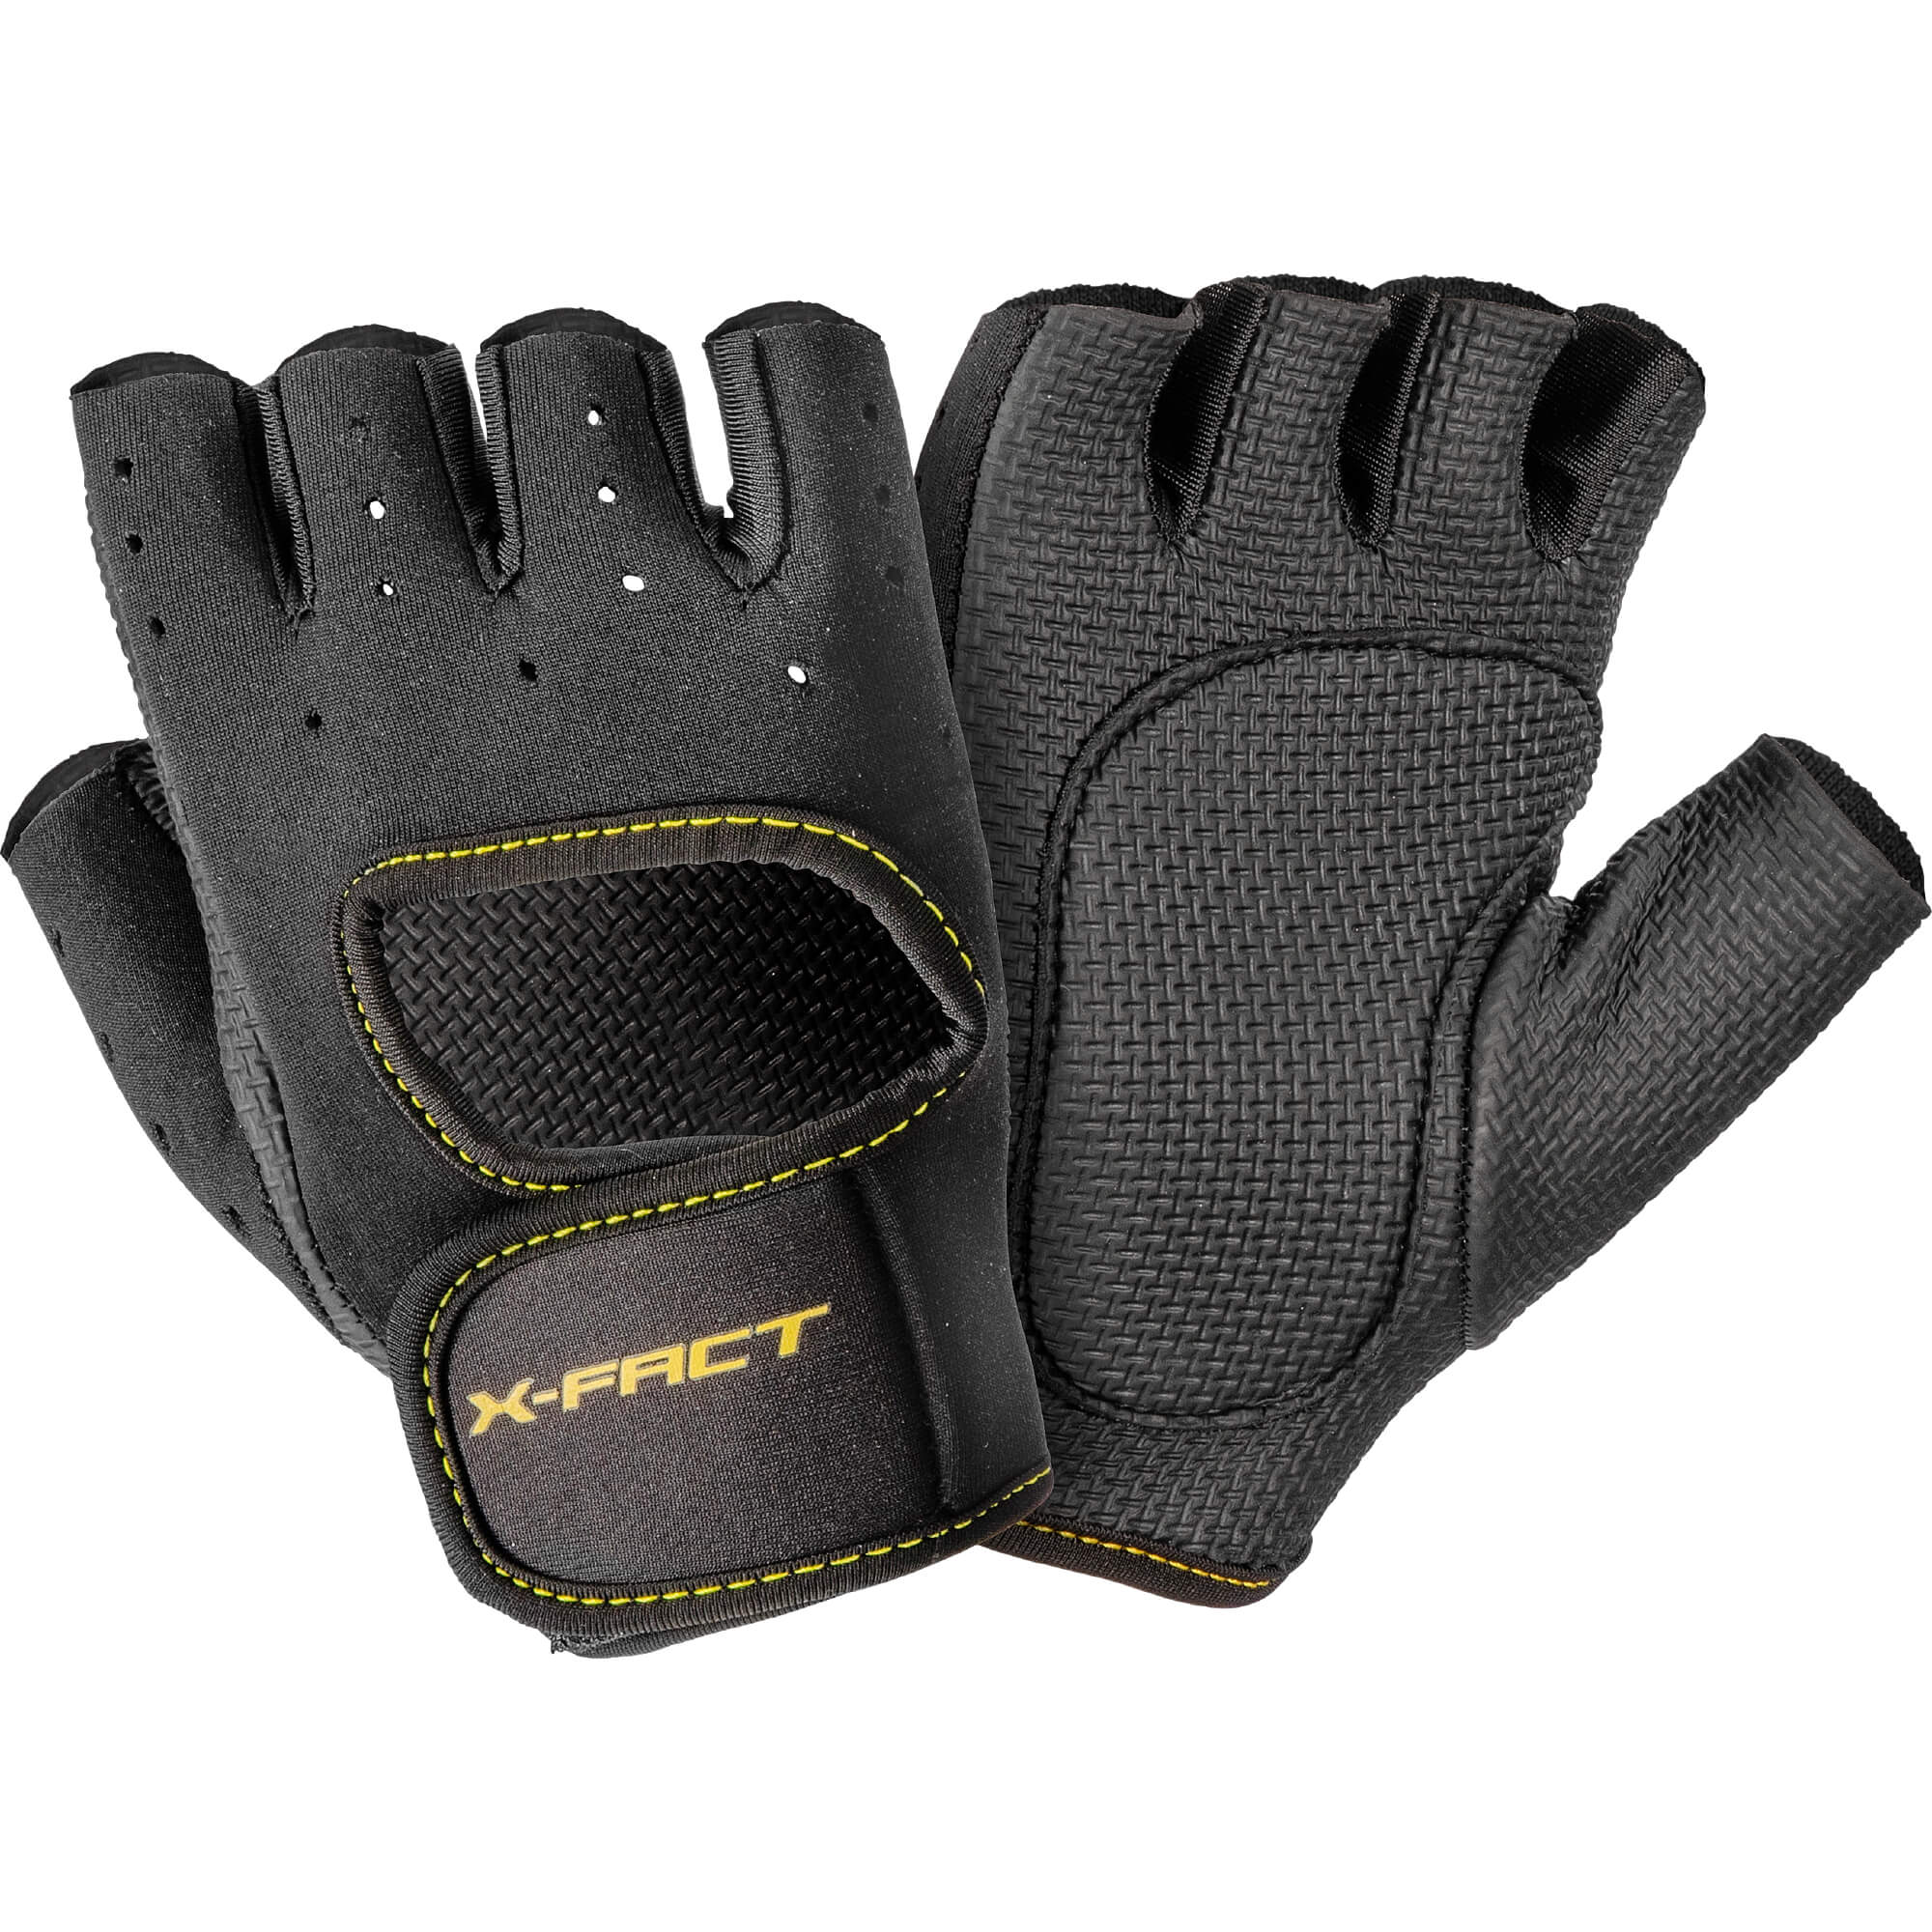 Fitness gloves imagine